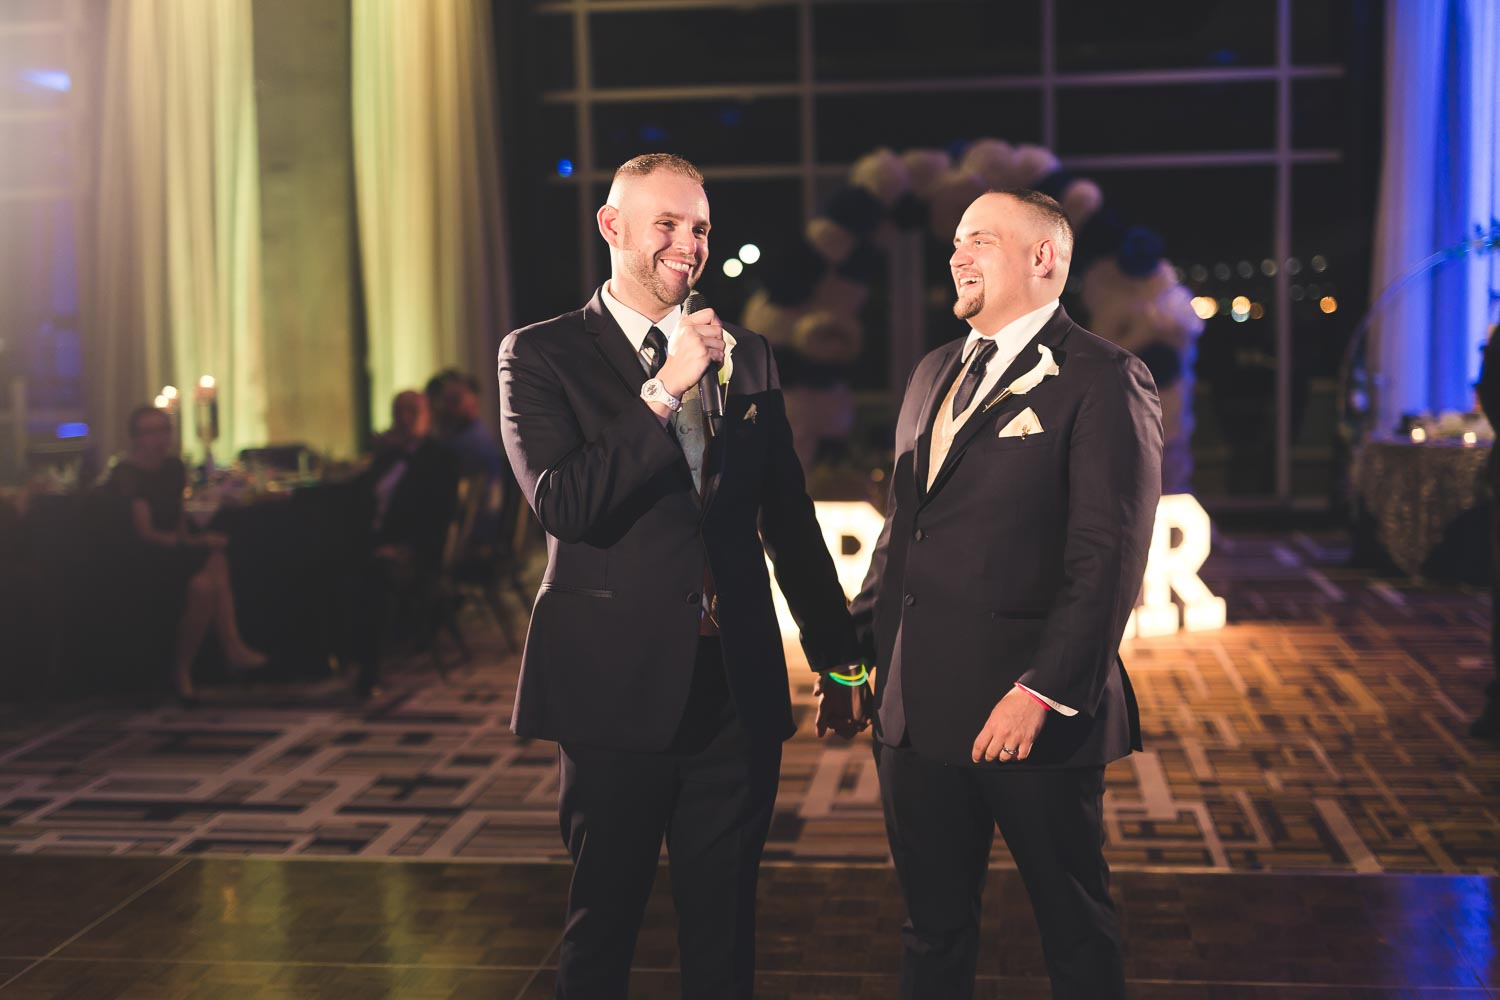 Grooms giving a toast - Sugarhouse Casino